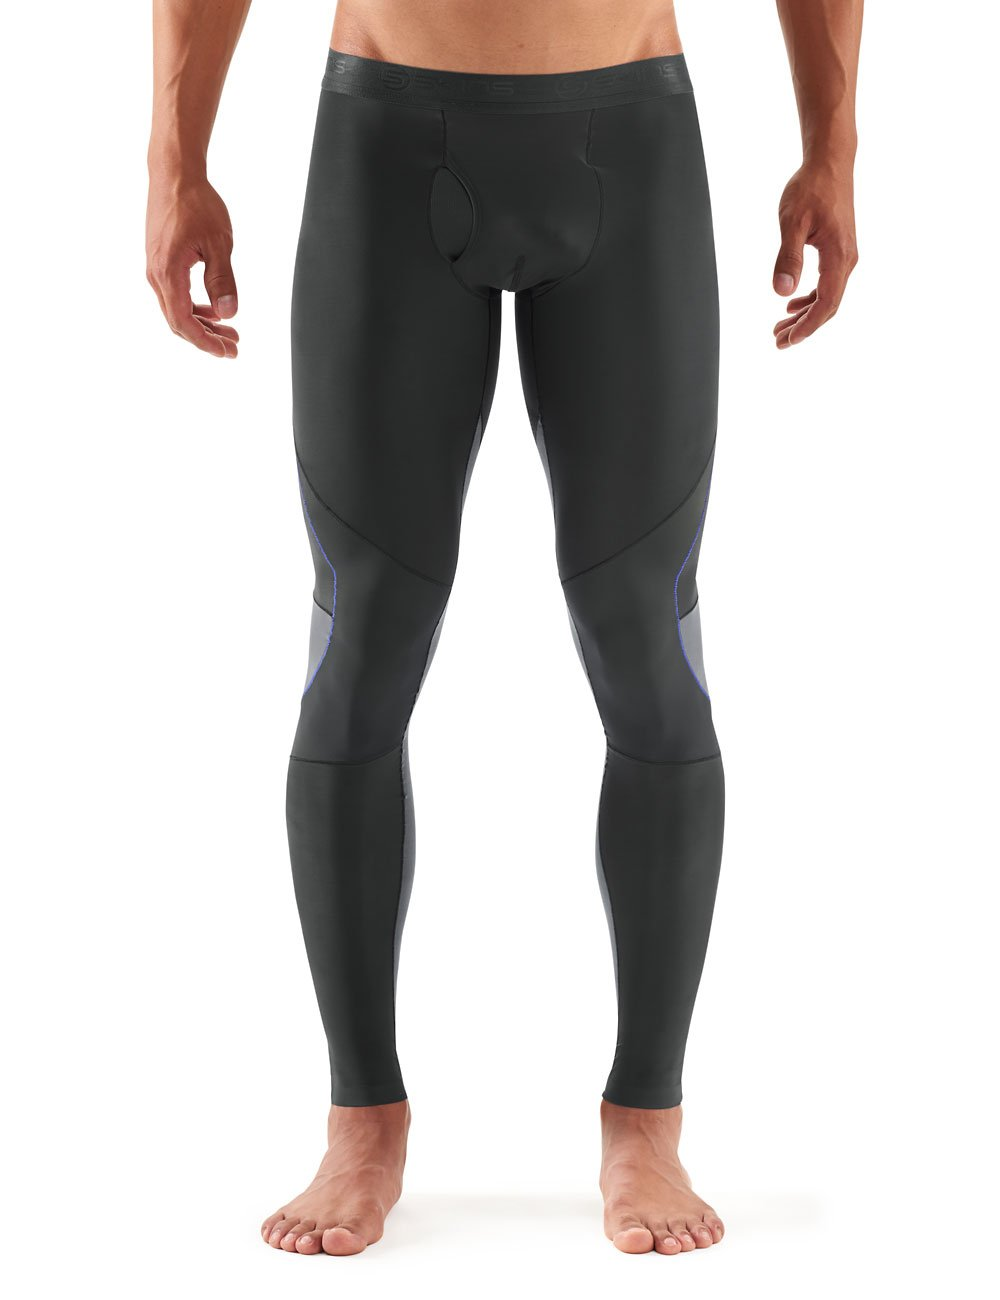 SKINS Men's RY400 Compression Recovery Tights SKIIM